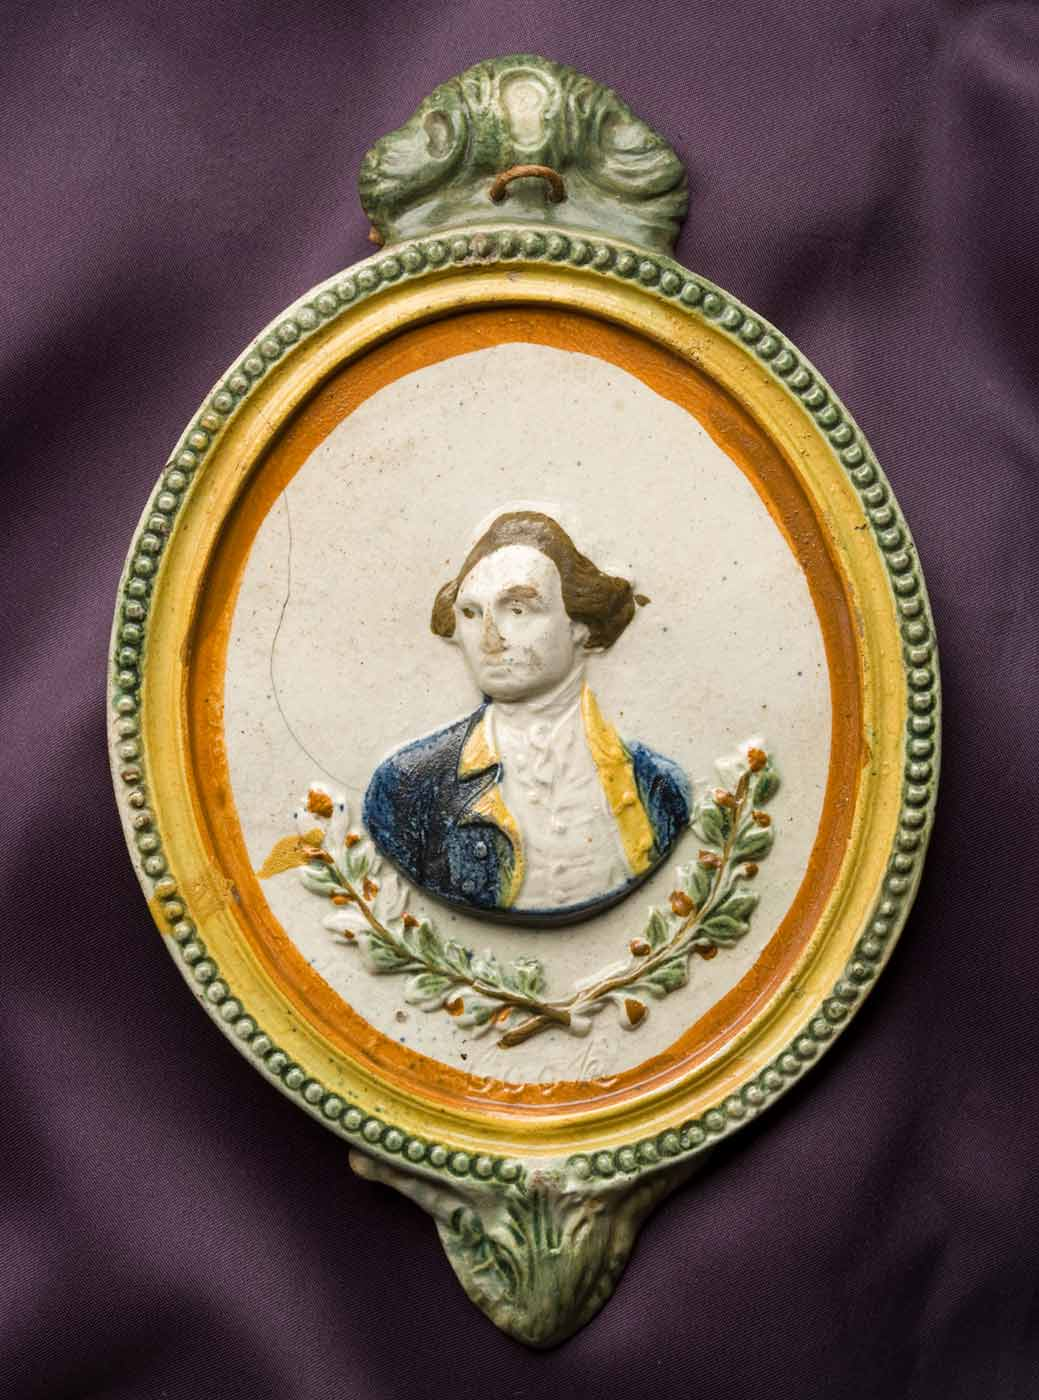 A cream coloured ceramic plaque with a relief portrait bust of a man set within an open wreath. The border of the plaque is hand-painted in concentric rings of green, yellow and brown. The figure wears a blue jacket with yellow facings and a brown wig. 'Cook' is impressed in the plaque below the wreath. A piece of brown string is tied through two small holes in the foliate moulding on the top, and a similar but smaller moulding is at the bottom. A crack runs from the edge of the proper right shoulder of the plaque to the right shoulder of the figure. - click to view larger image